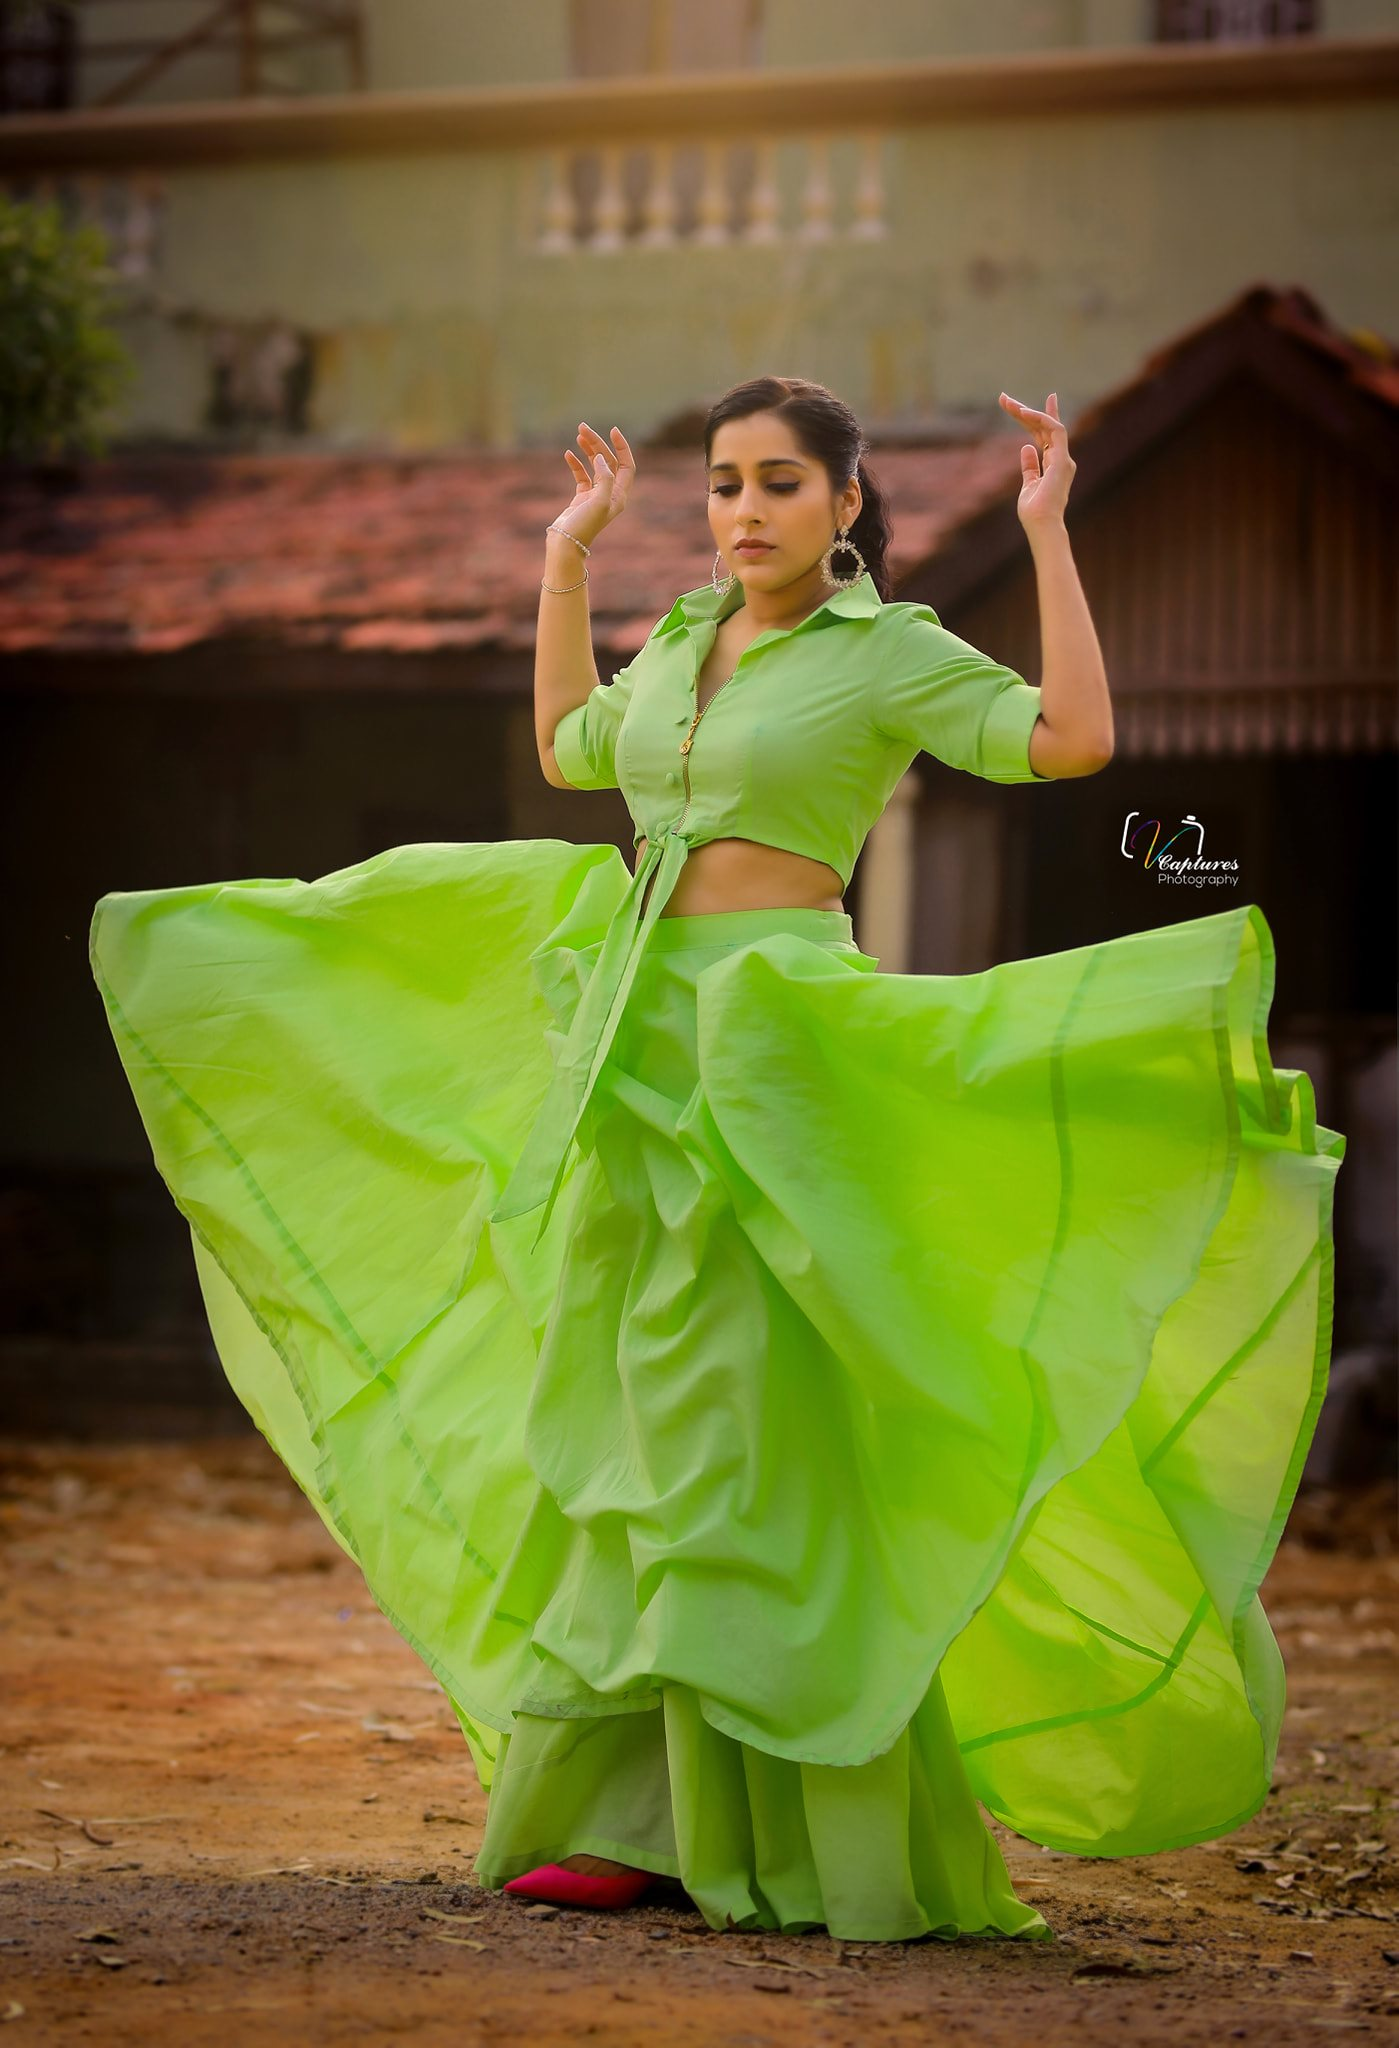 Beautiful actress Rashmi Gautham in radium color skirt and top.  |  |  |  | 2020-11-23